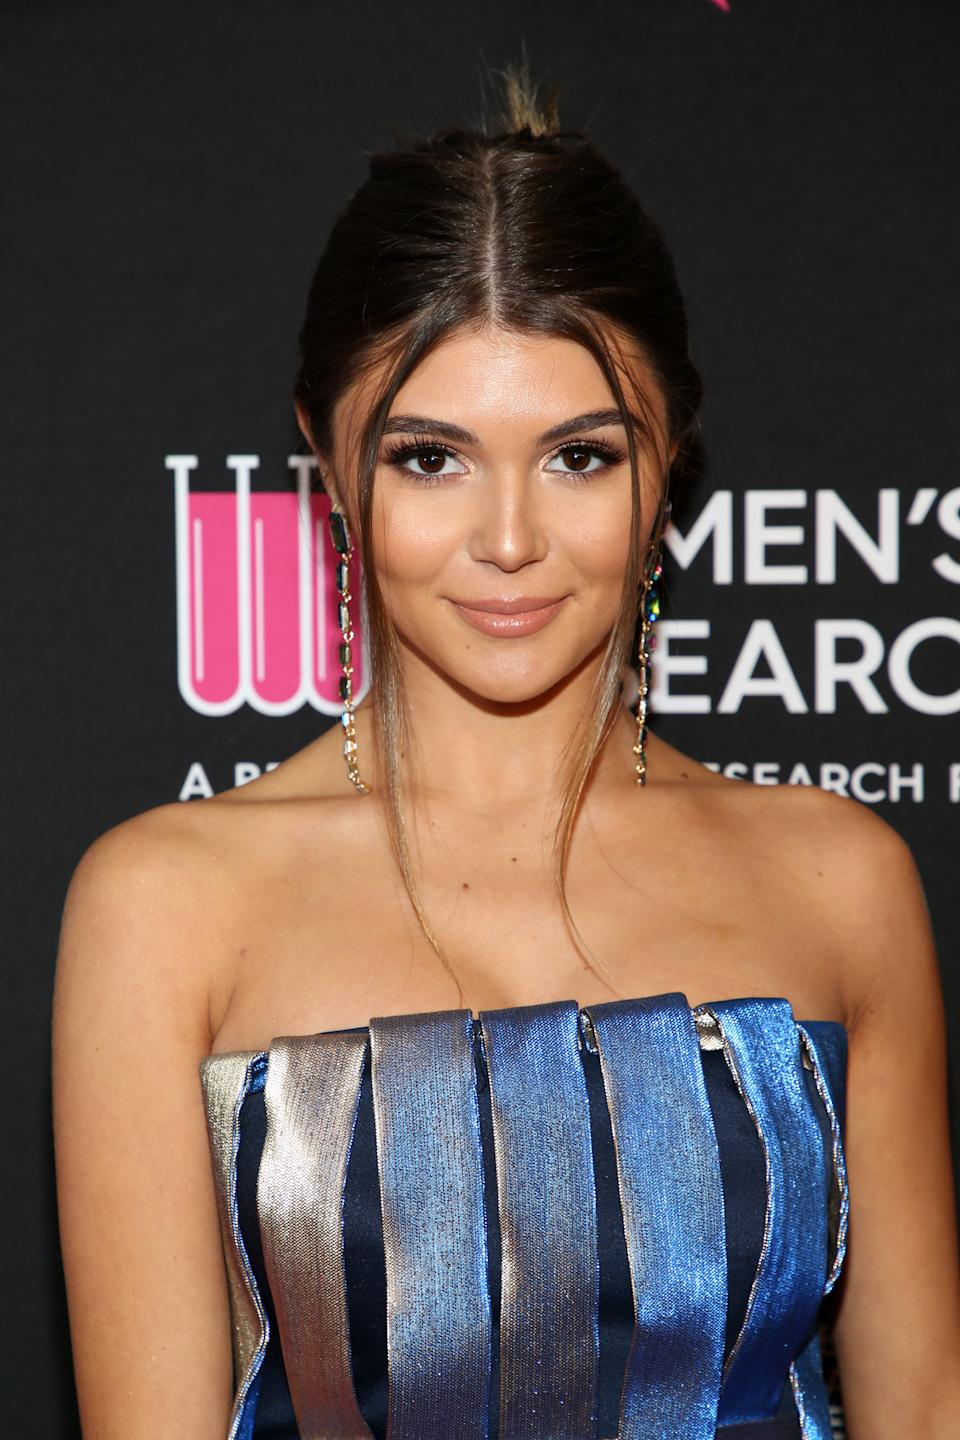 Lori Loughlin's daughter Olivia Jade returns to YouTube after college admissions scandal: 'I just want to move on and do better'